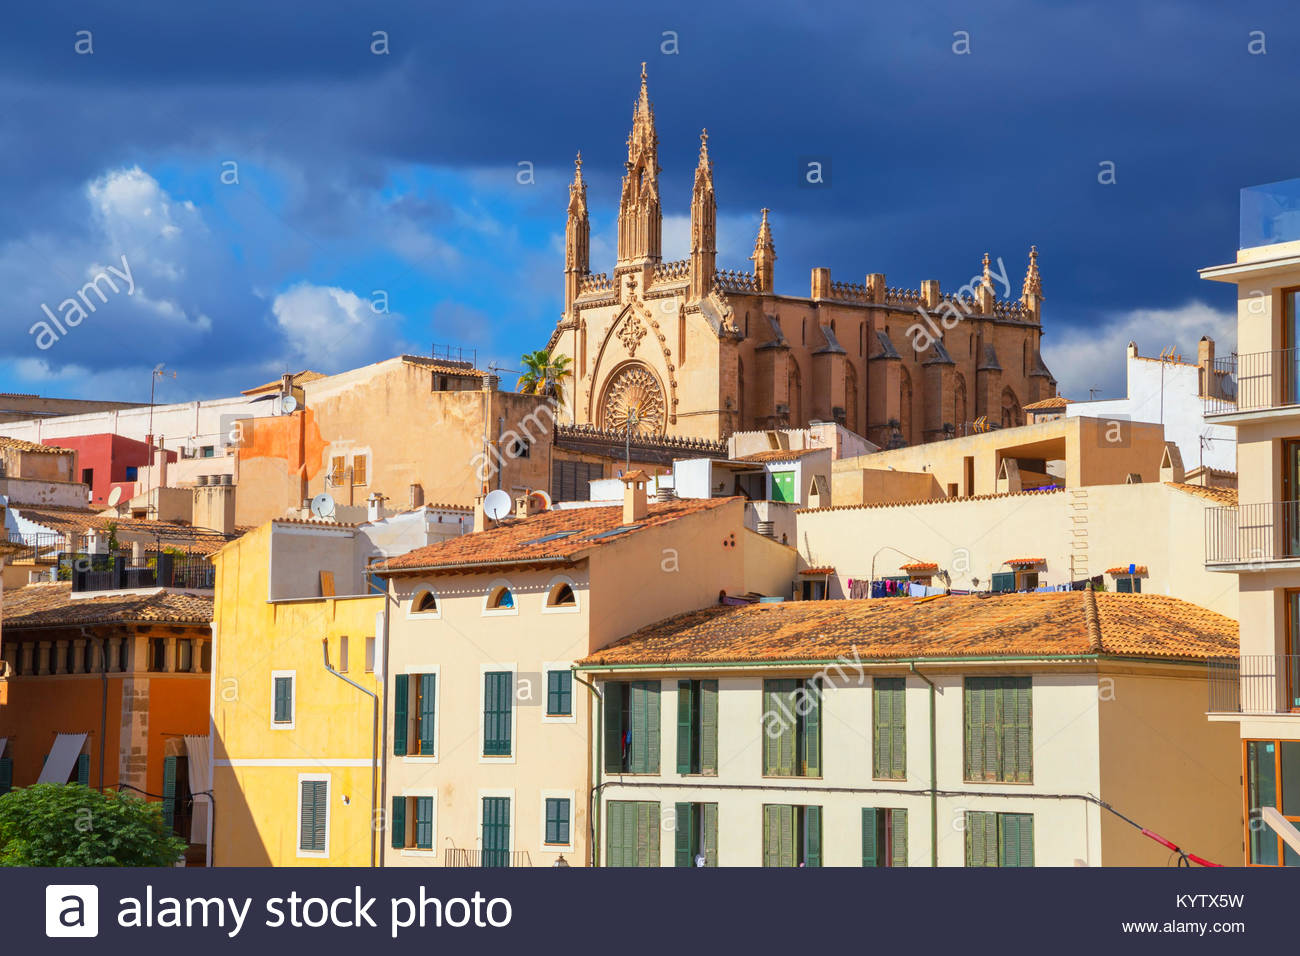 View of historic district, Palma de Mallorca, Mallorca, Balearic Islands, Spain, Europe Stock Photo